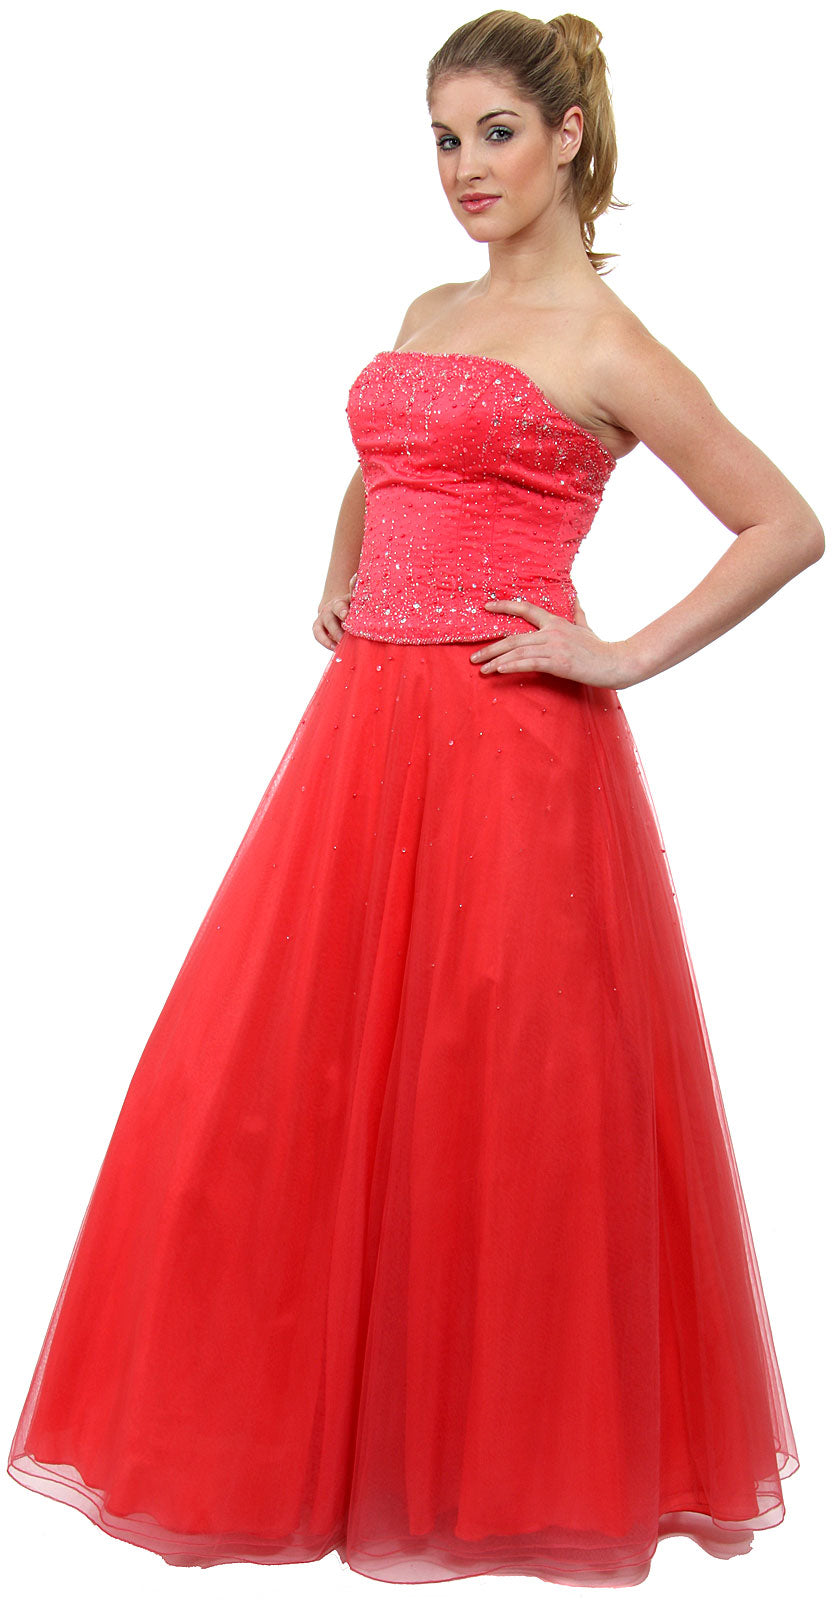 Main image of Watermelon A-line Beaded Prom Dress